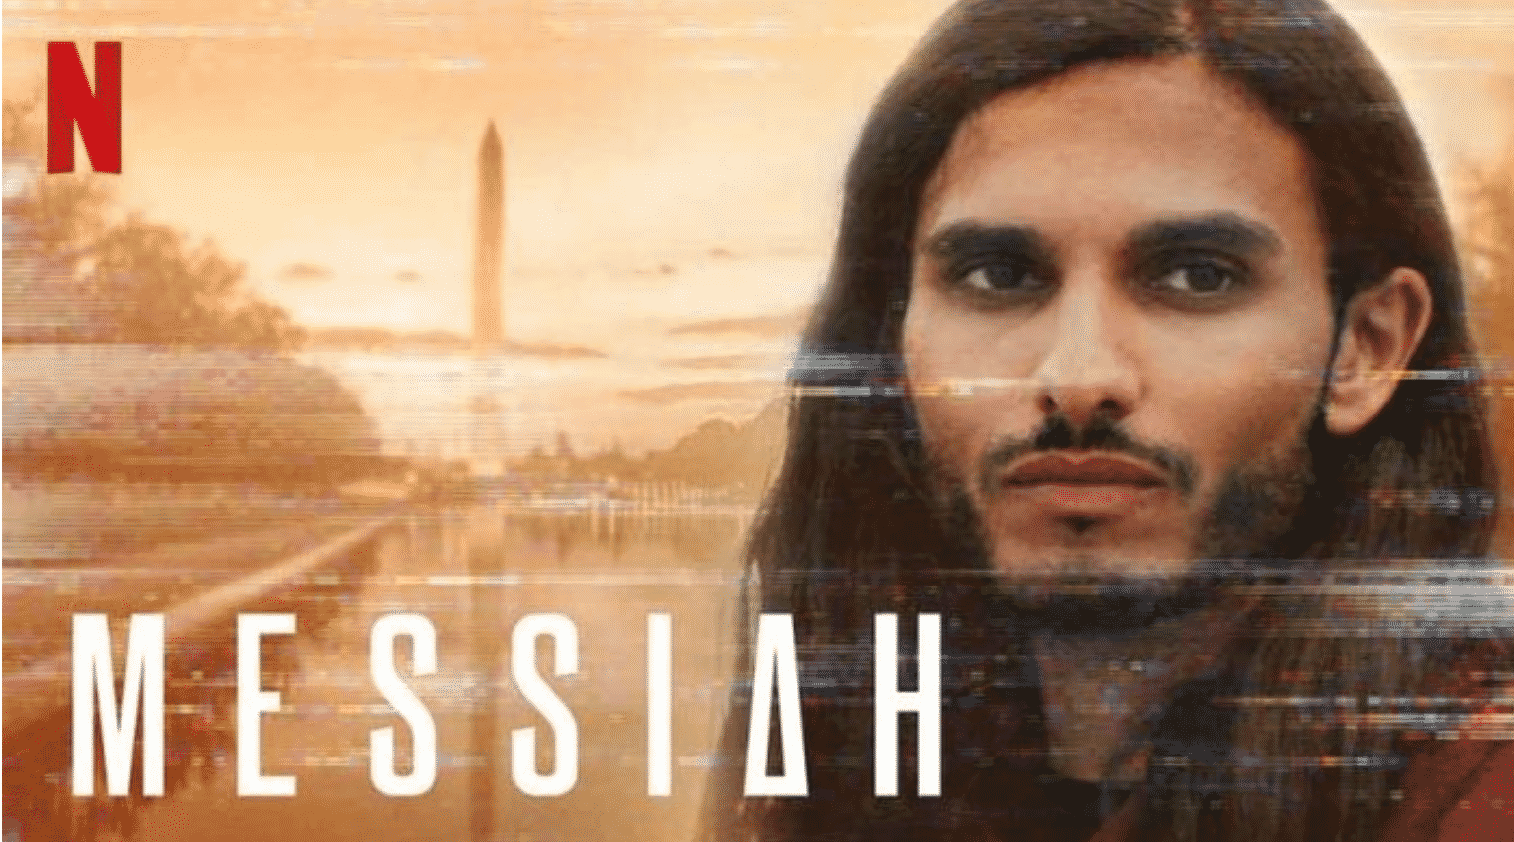 Messiah (movie review)